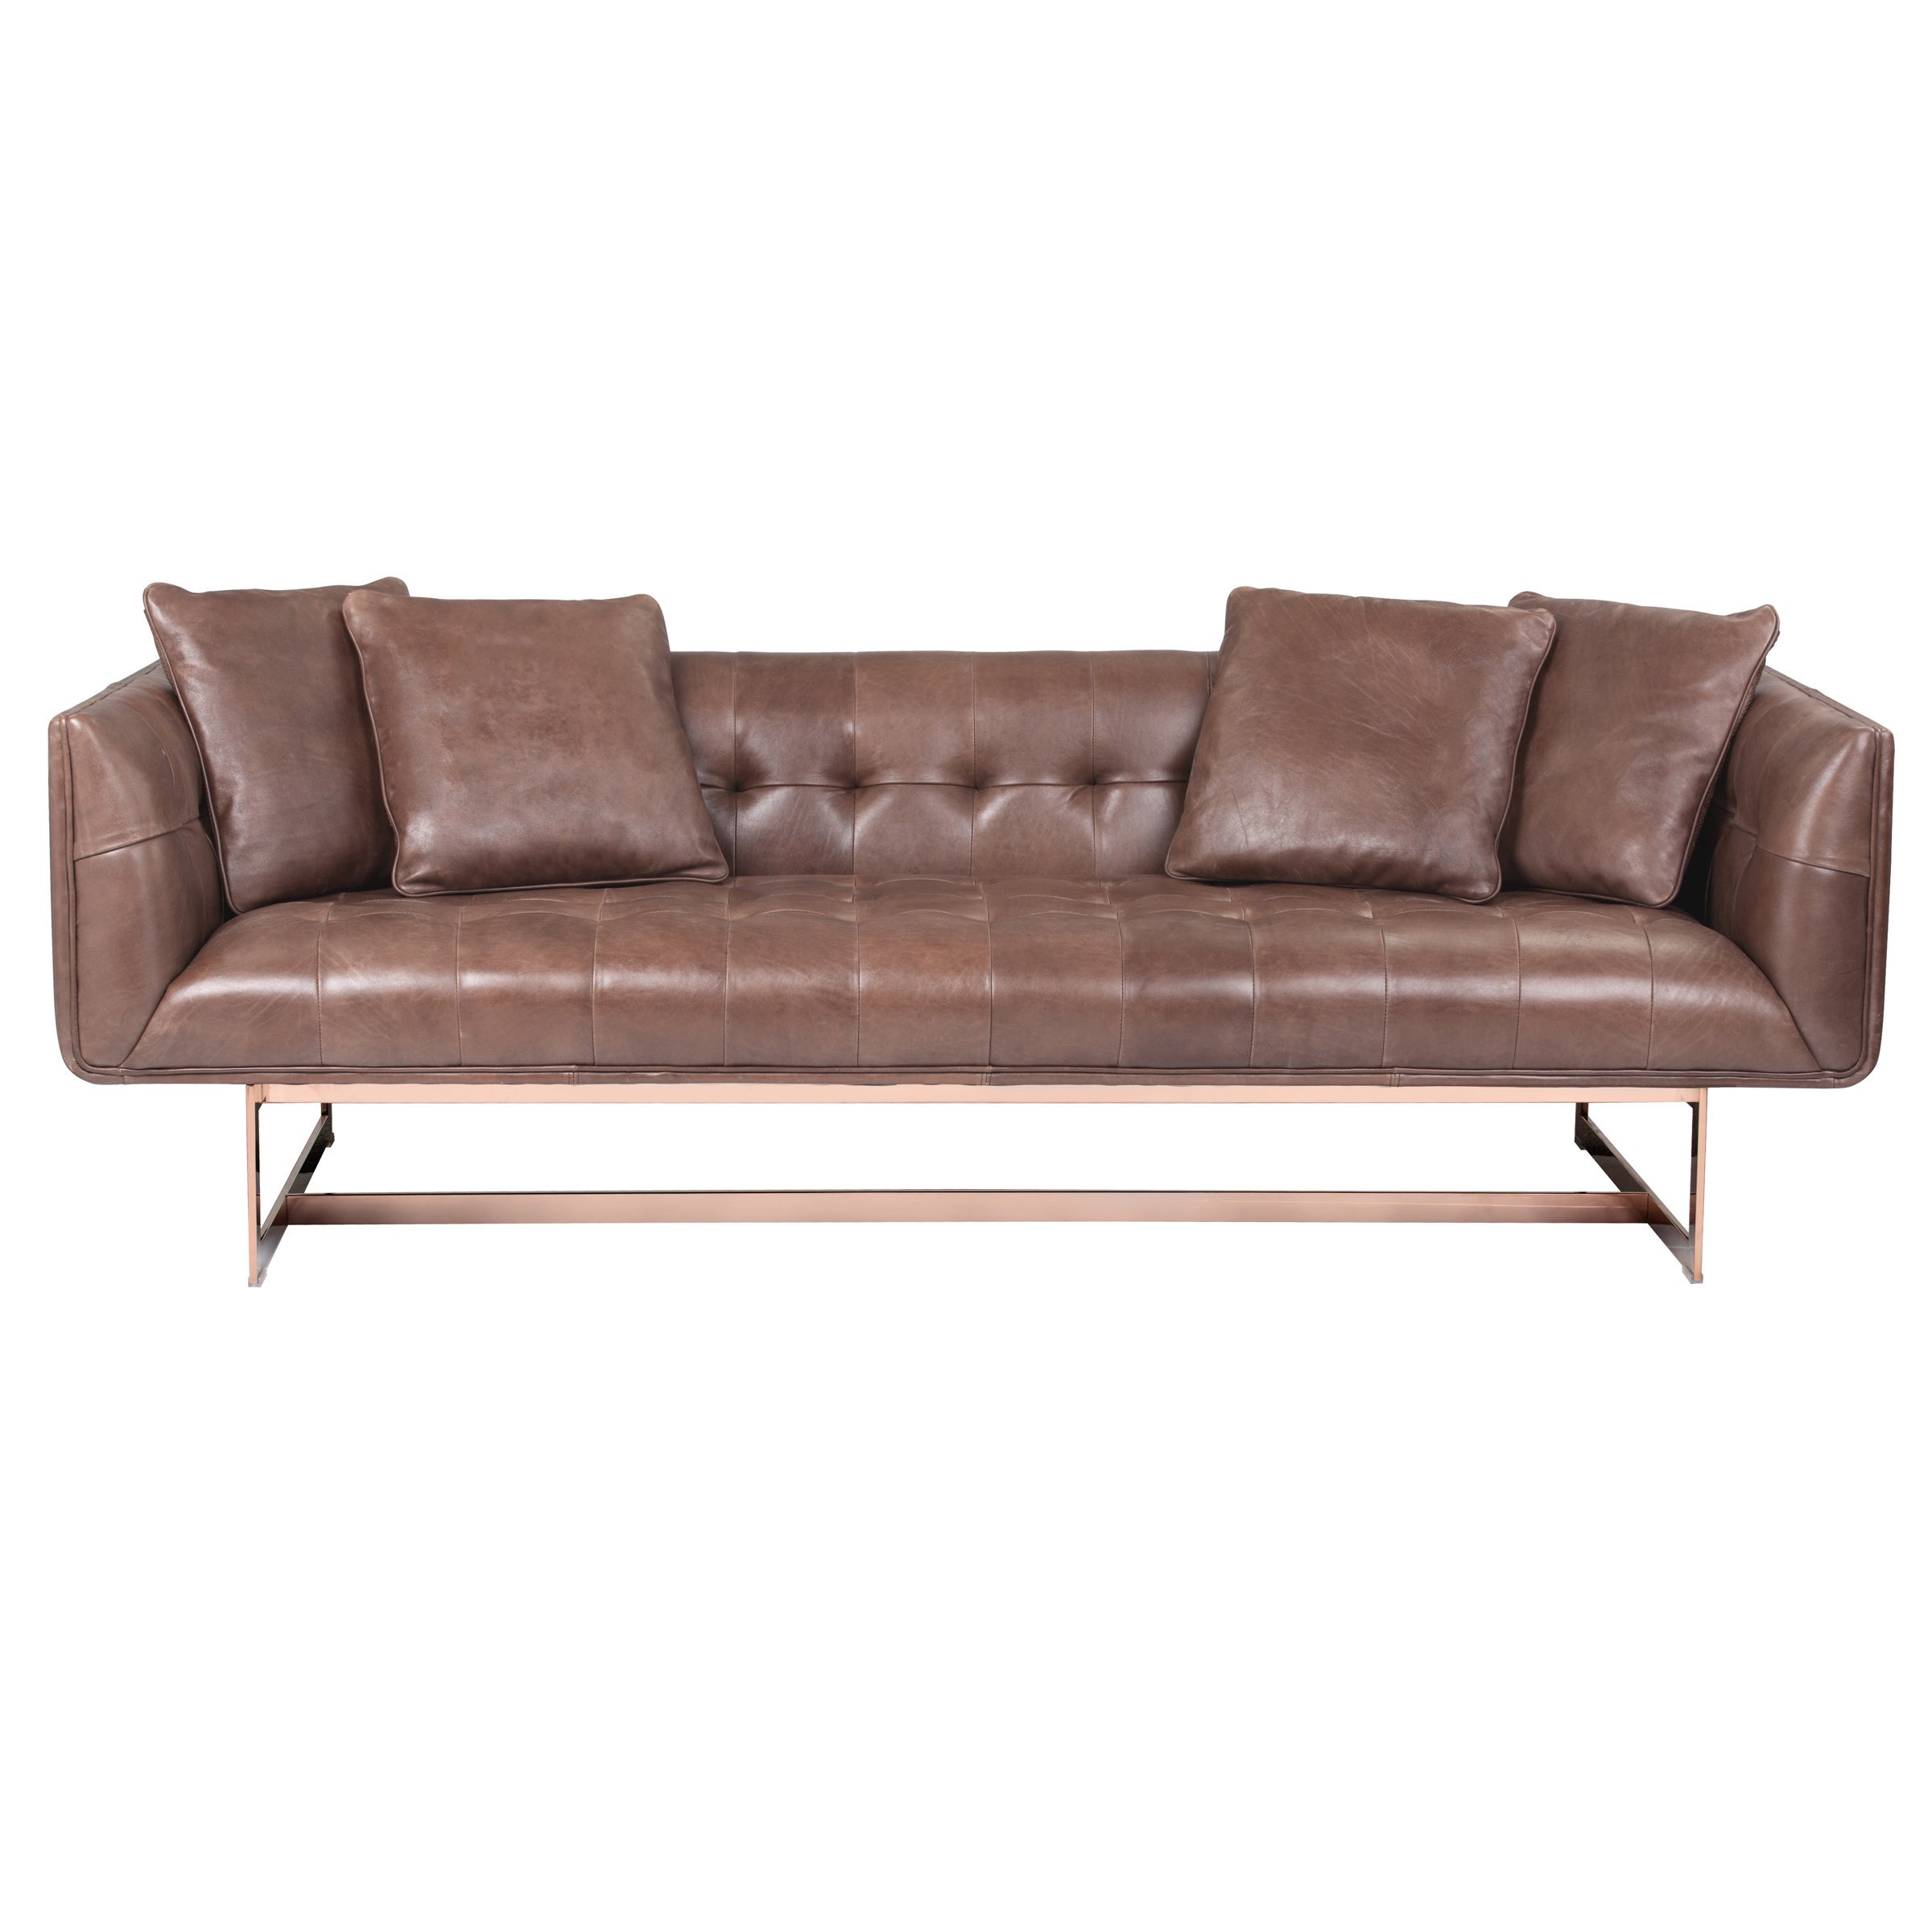 Shop Sunpan U0027Clubu0027 Matisse Rose Gold Leather Sofa With Pillows   On Sale    Free Shipping Today   Overstock.com   10756336